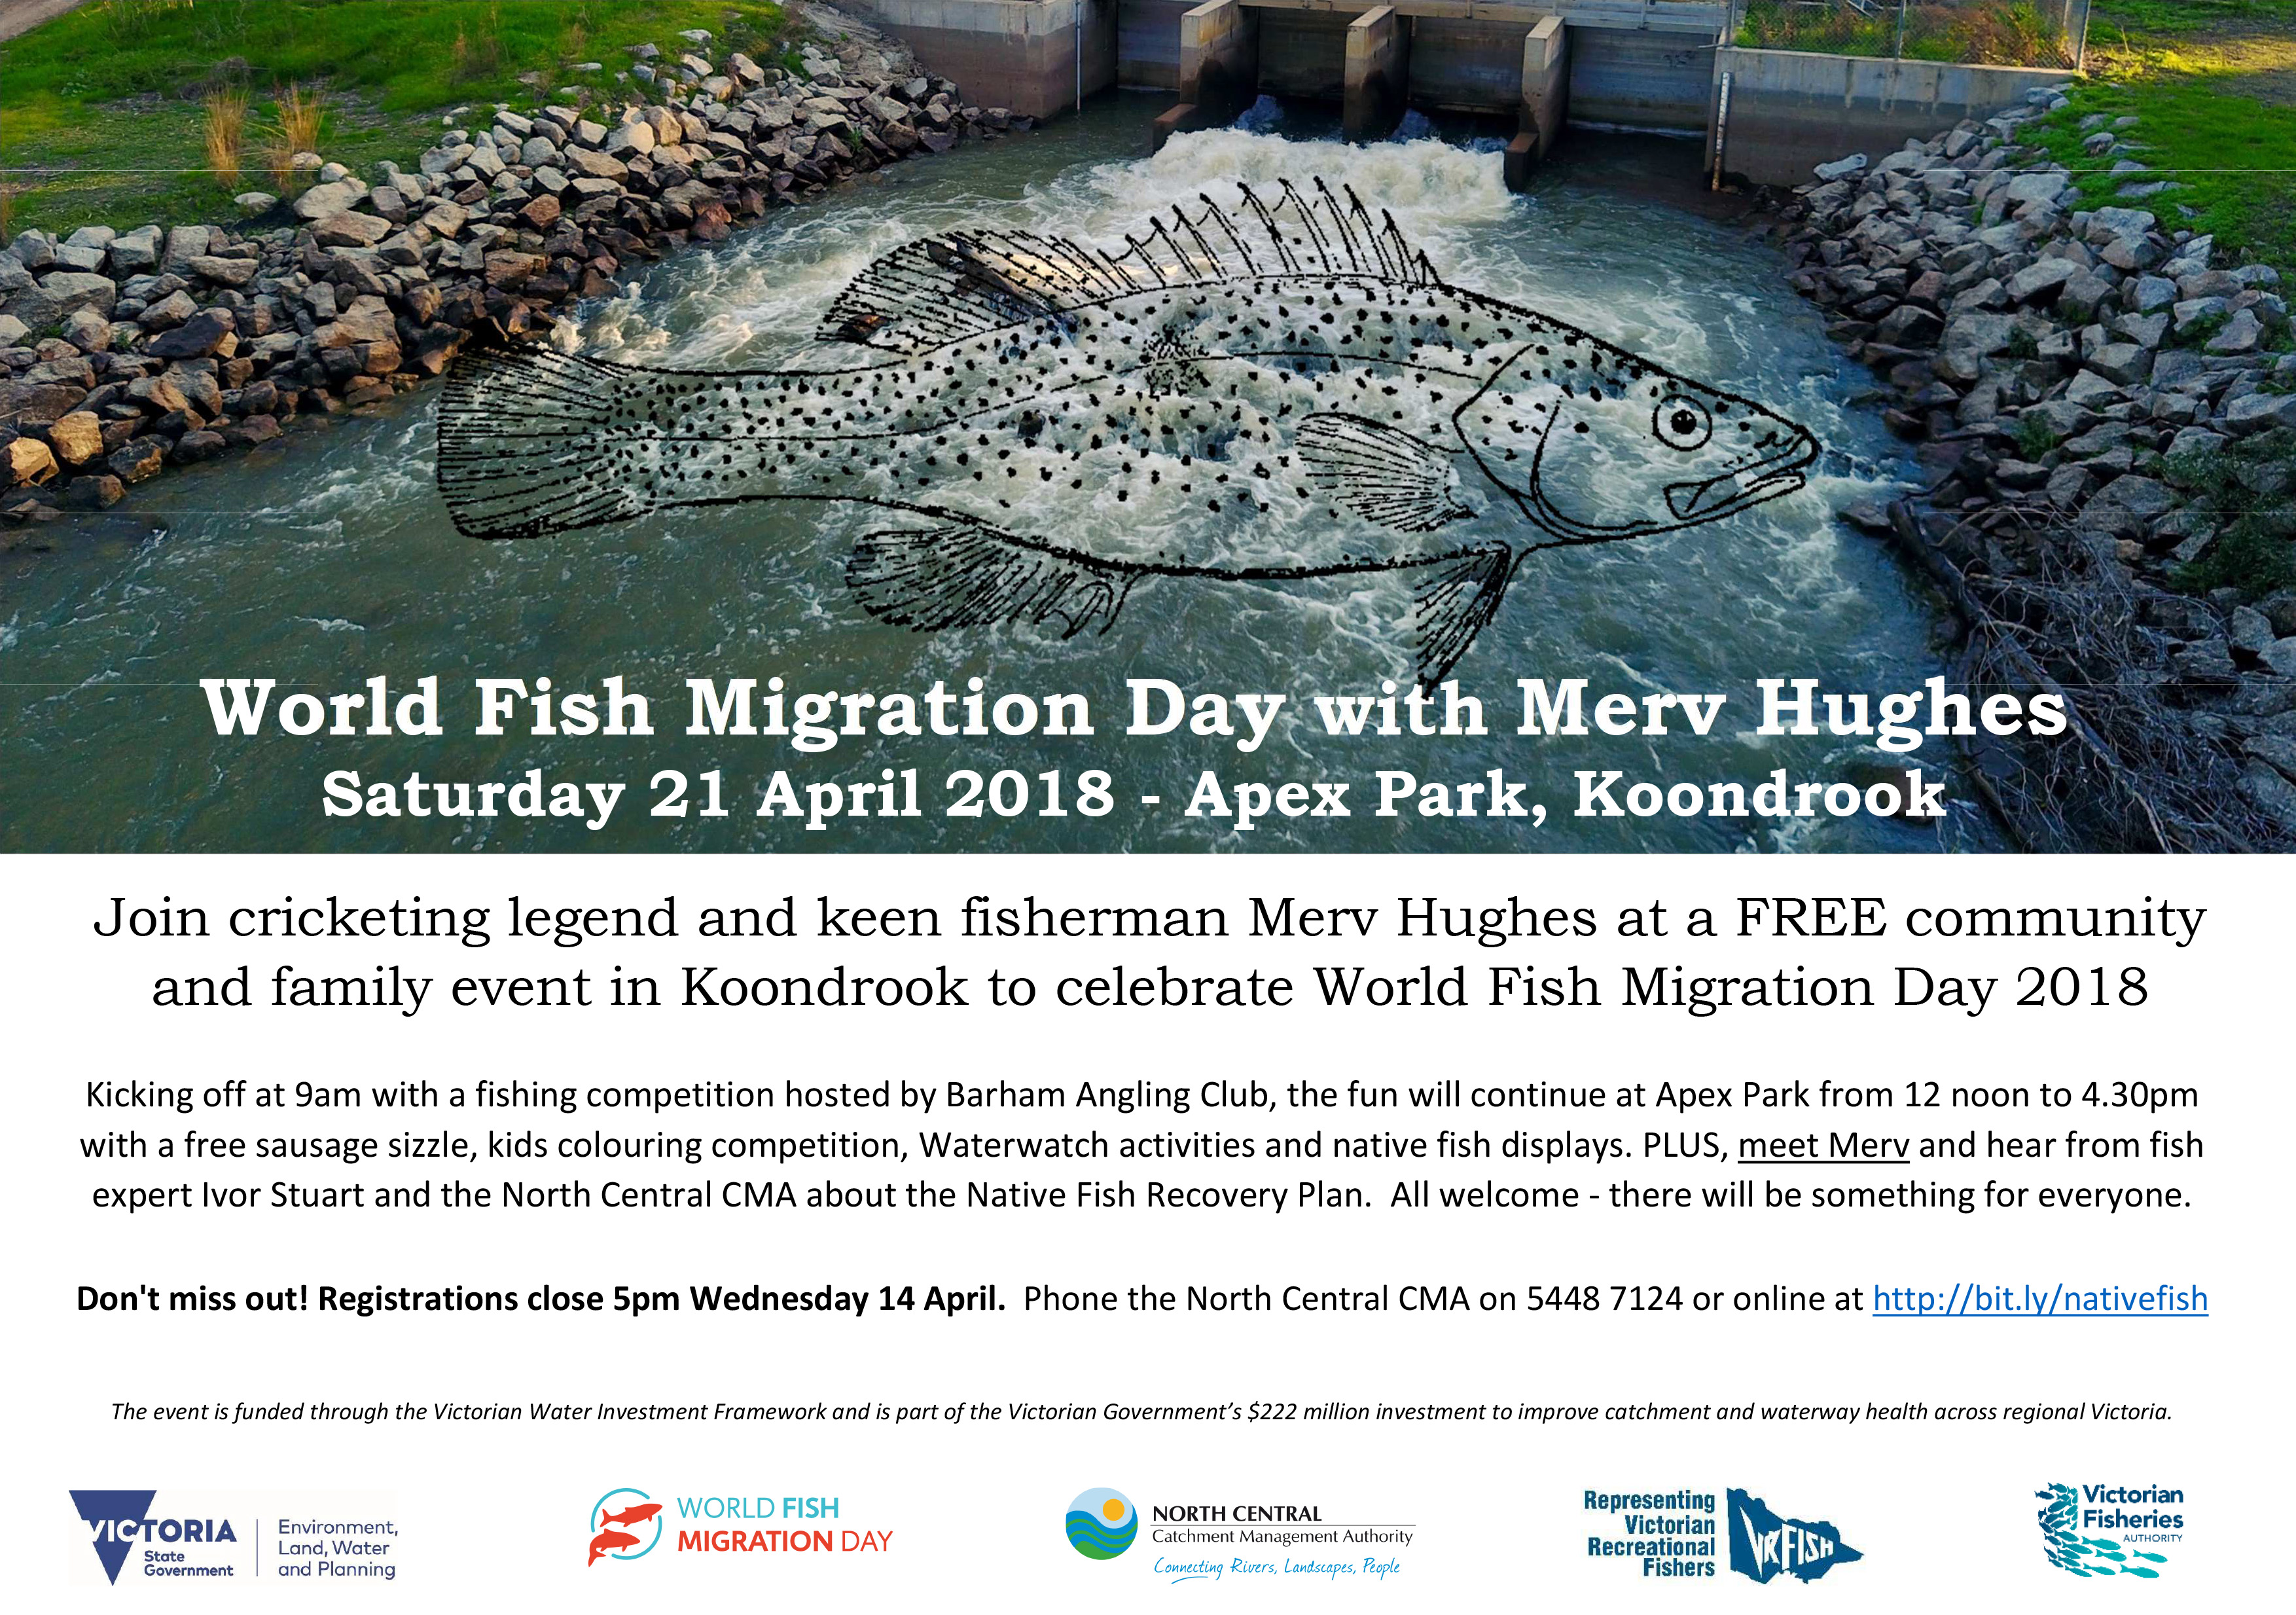 World fish migration day flyer.jpg